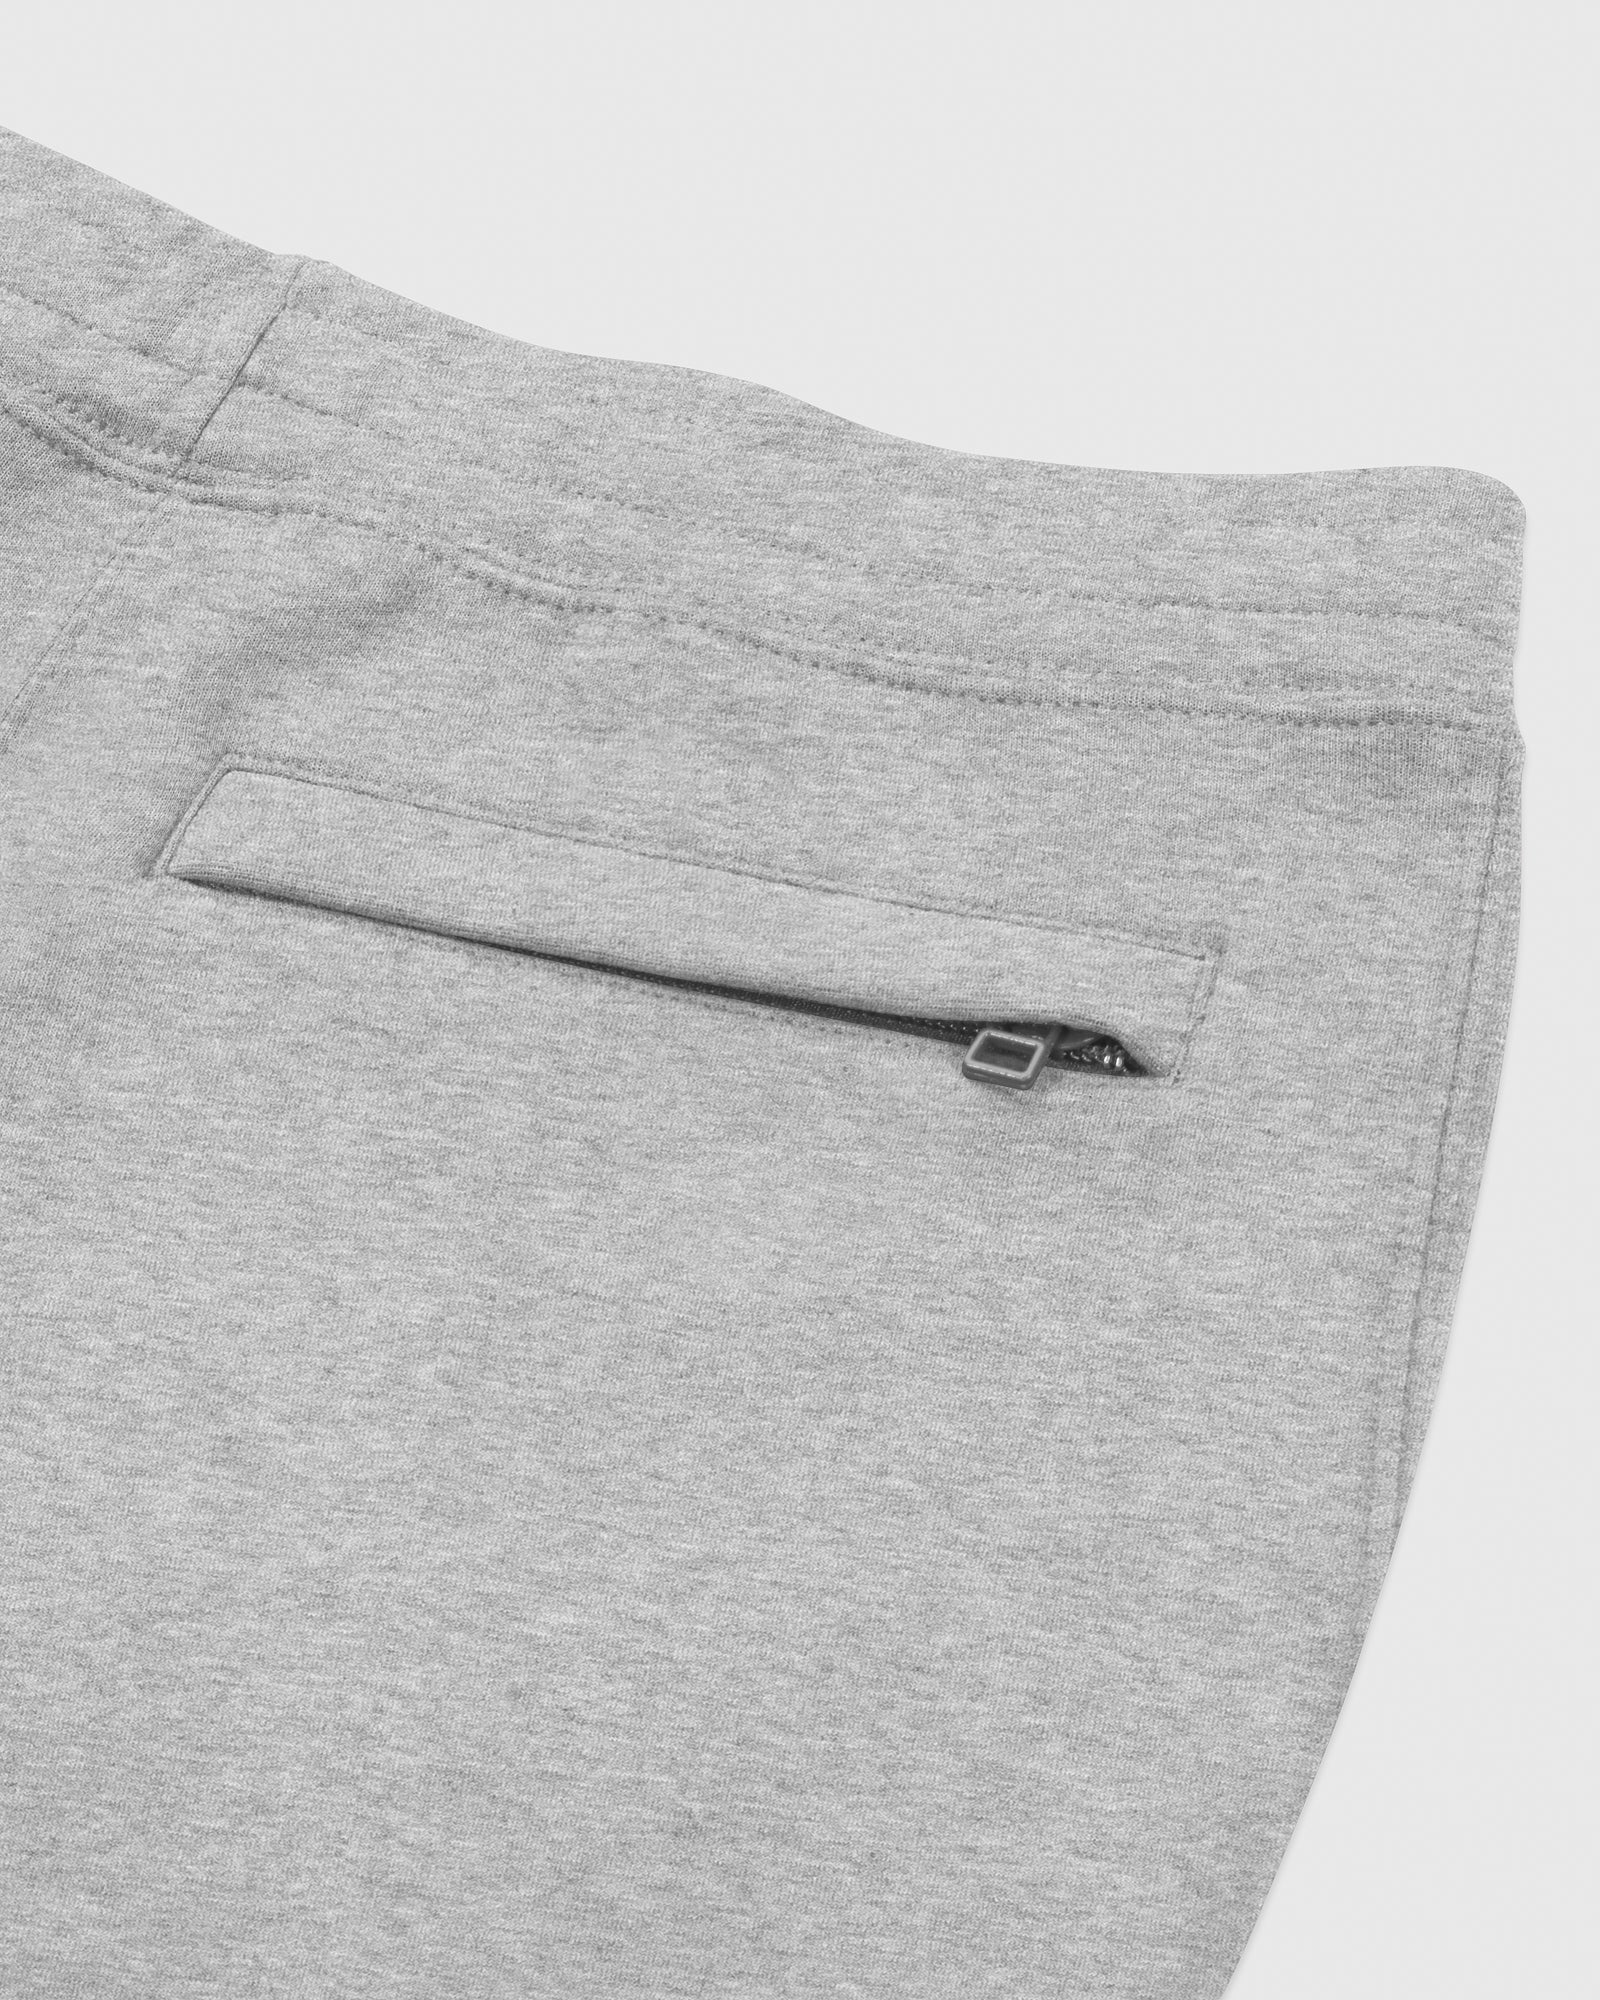 OVO FRANCHISE DOUBLE KNIT SWEATPANT - HEATHER GREY